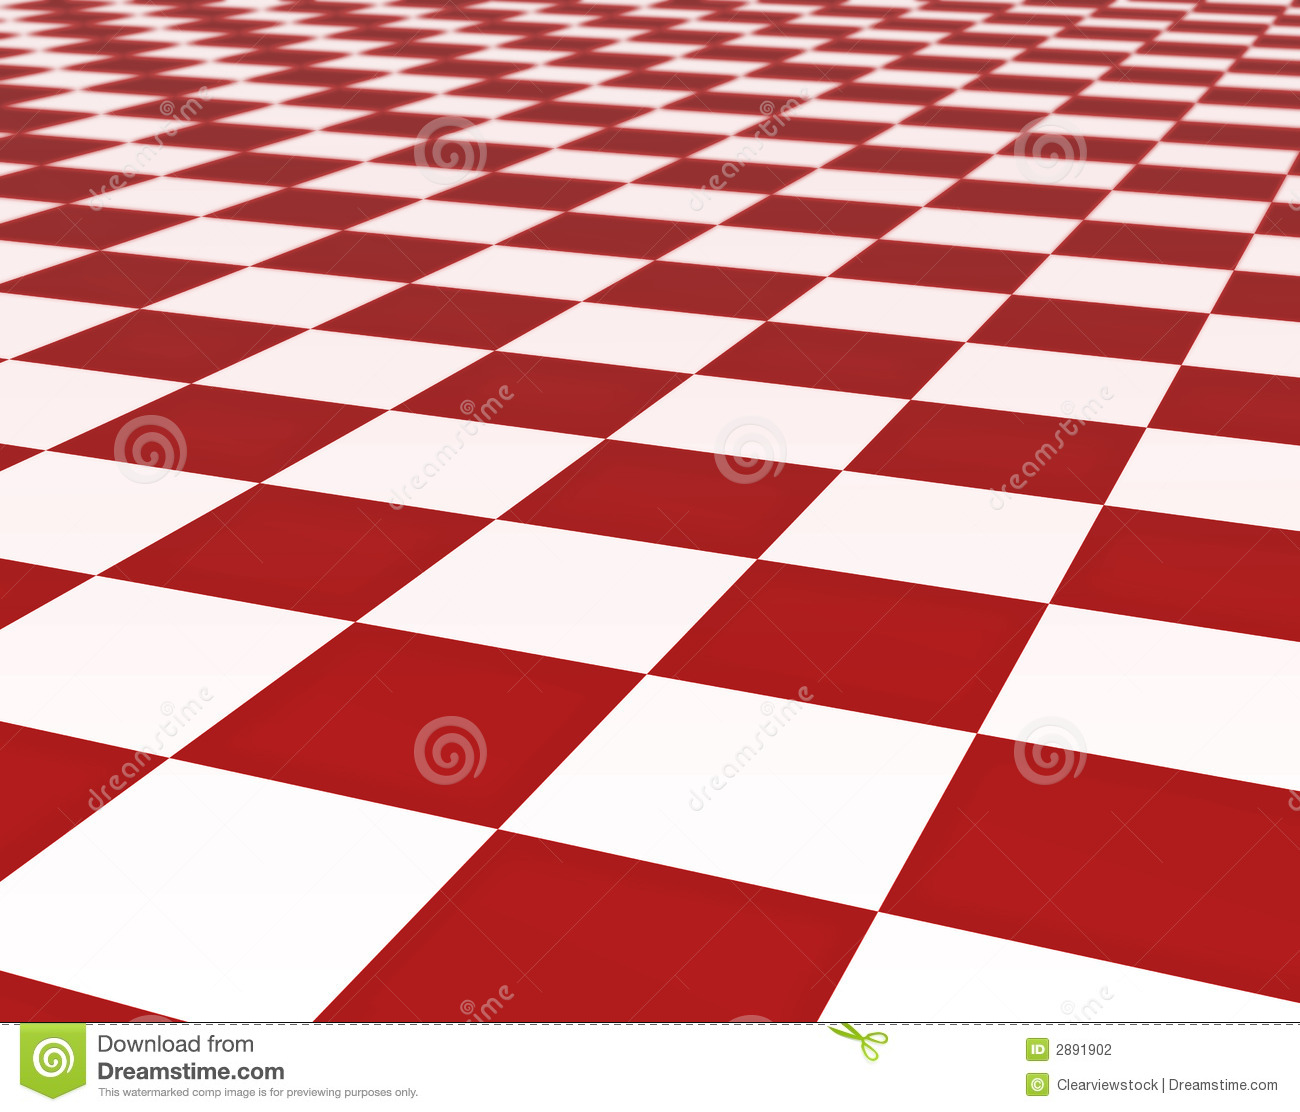 Red and white floor tiles stock illustration image of tiles 2891902 red and white floor tiles dailygadgetfo Choice Image